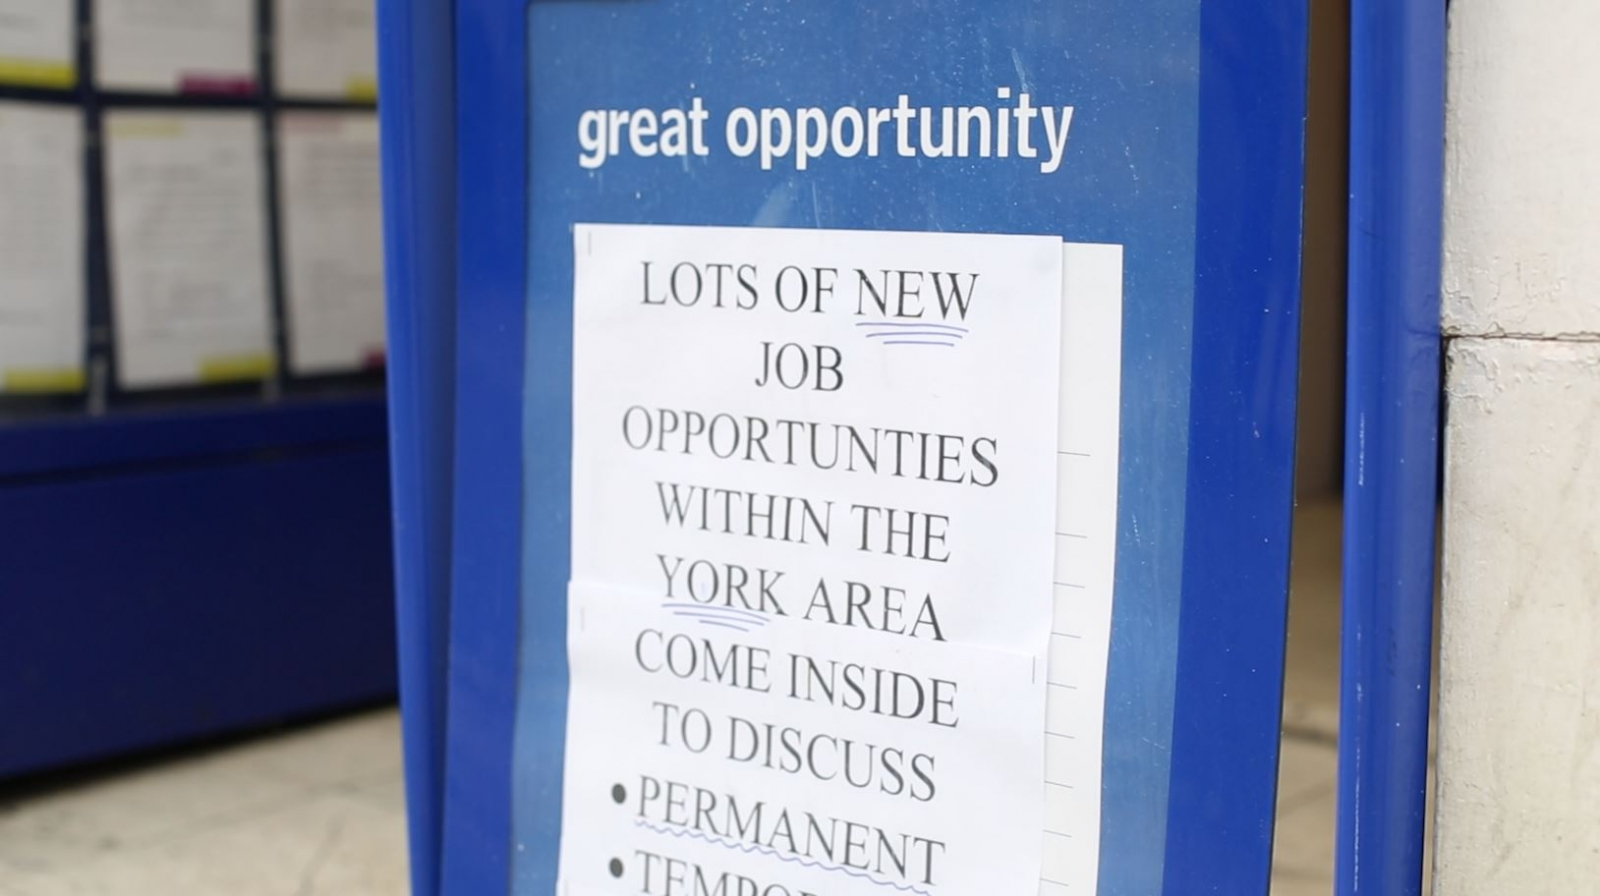 North England Economy: Has the 'Jobs Miracle' Reached the North?